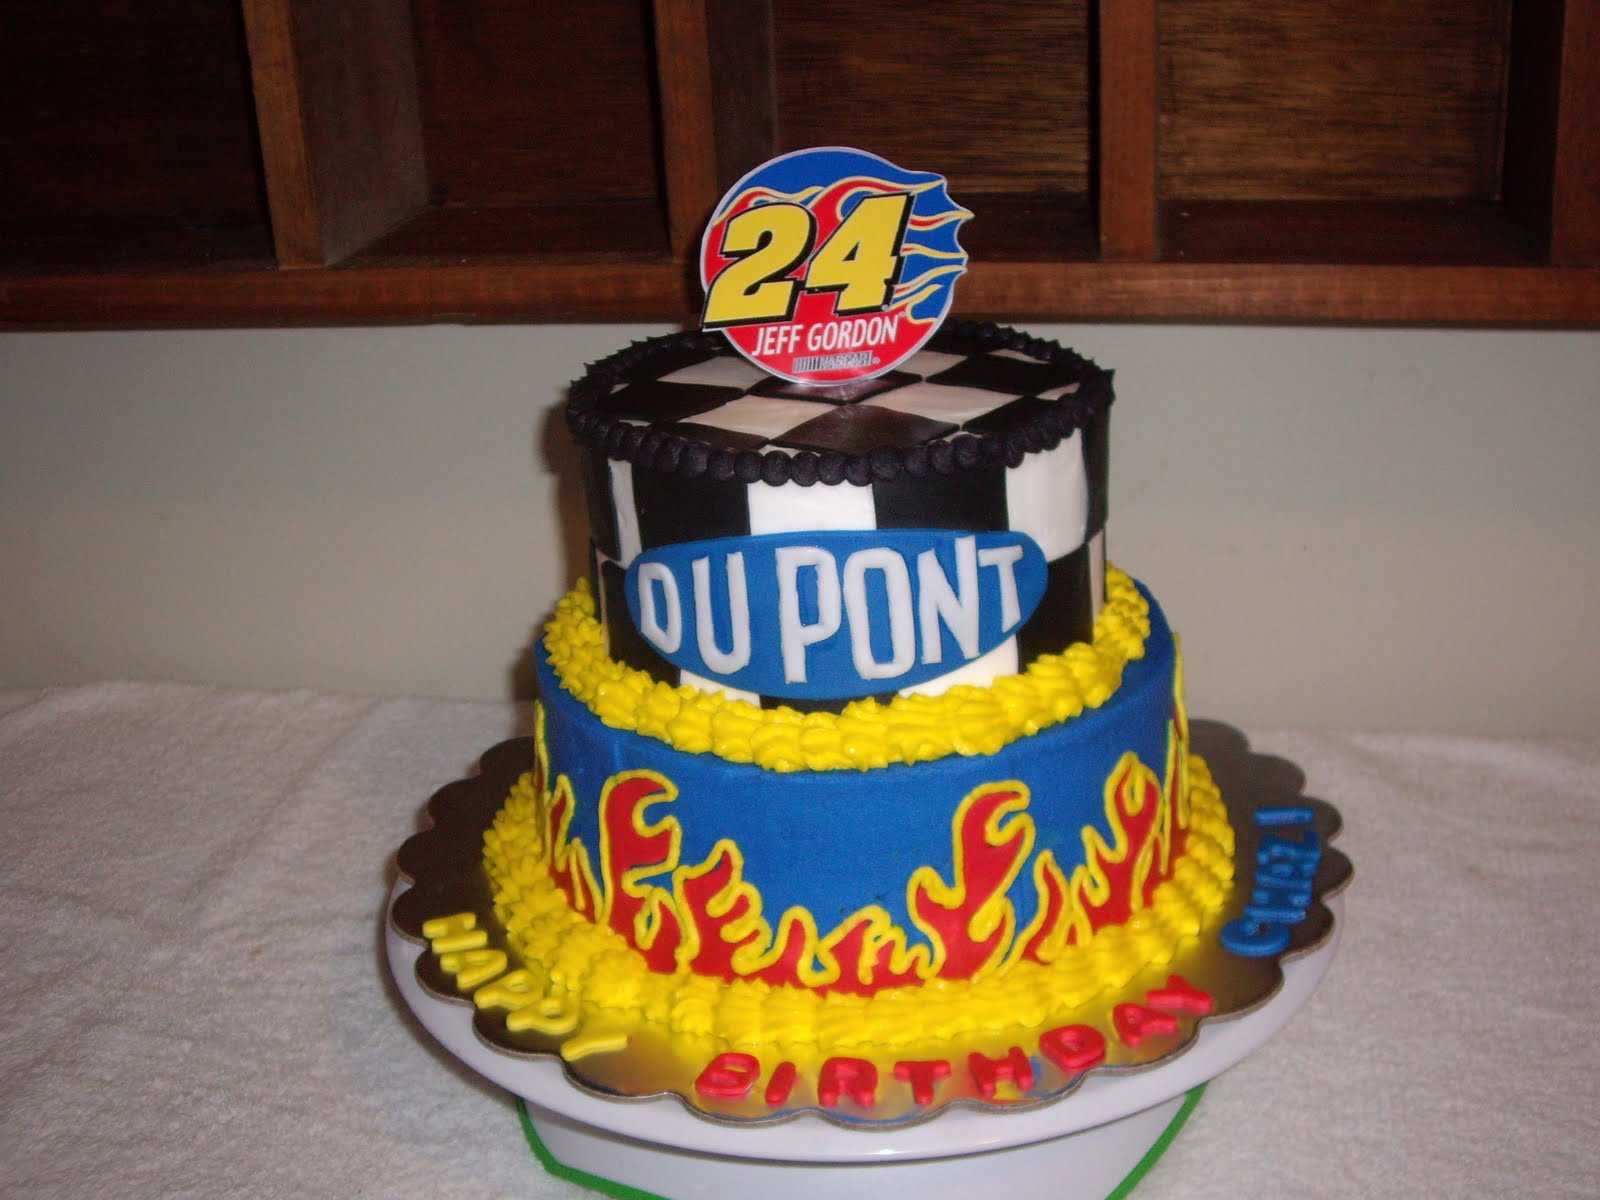 NASCAR Cakes http://customcakesbychristy.blogspot.com/2011/03/jeff-gordon-nascar-birthday-cake.html